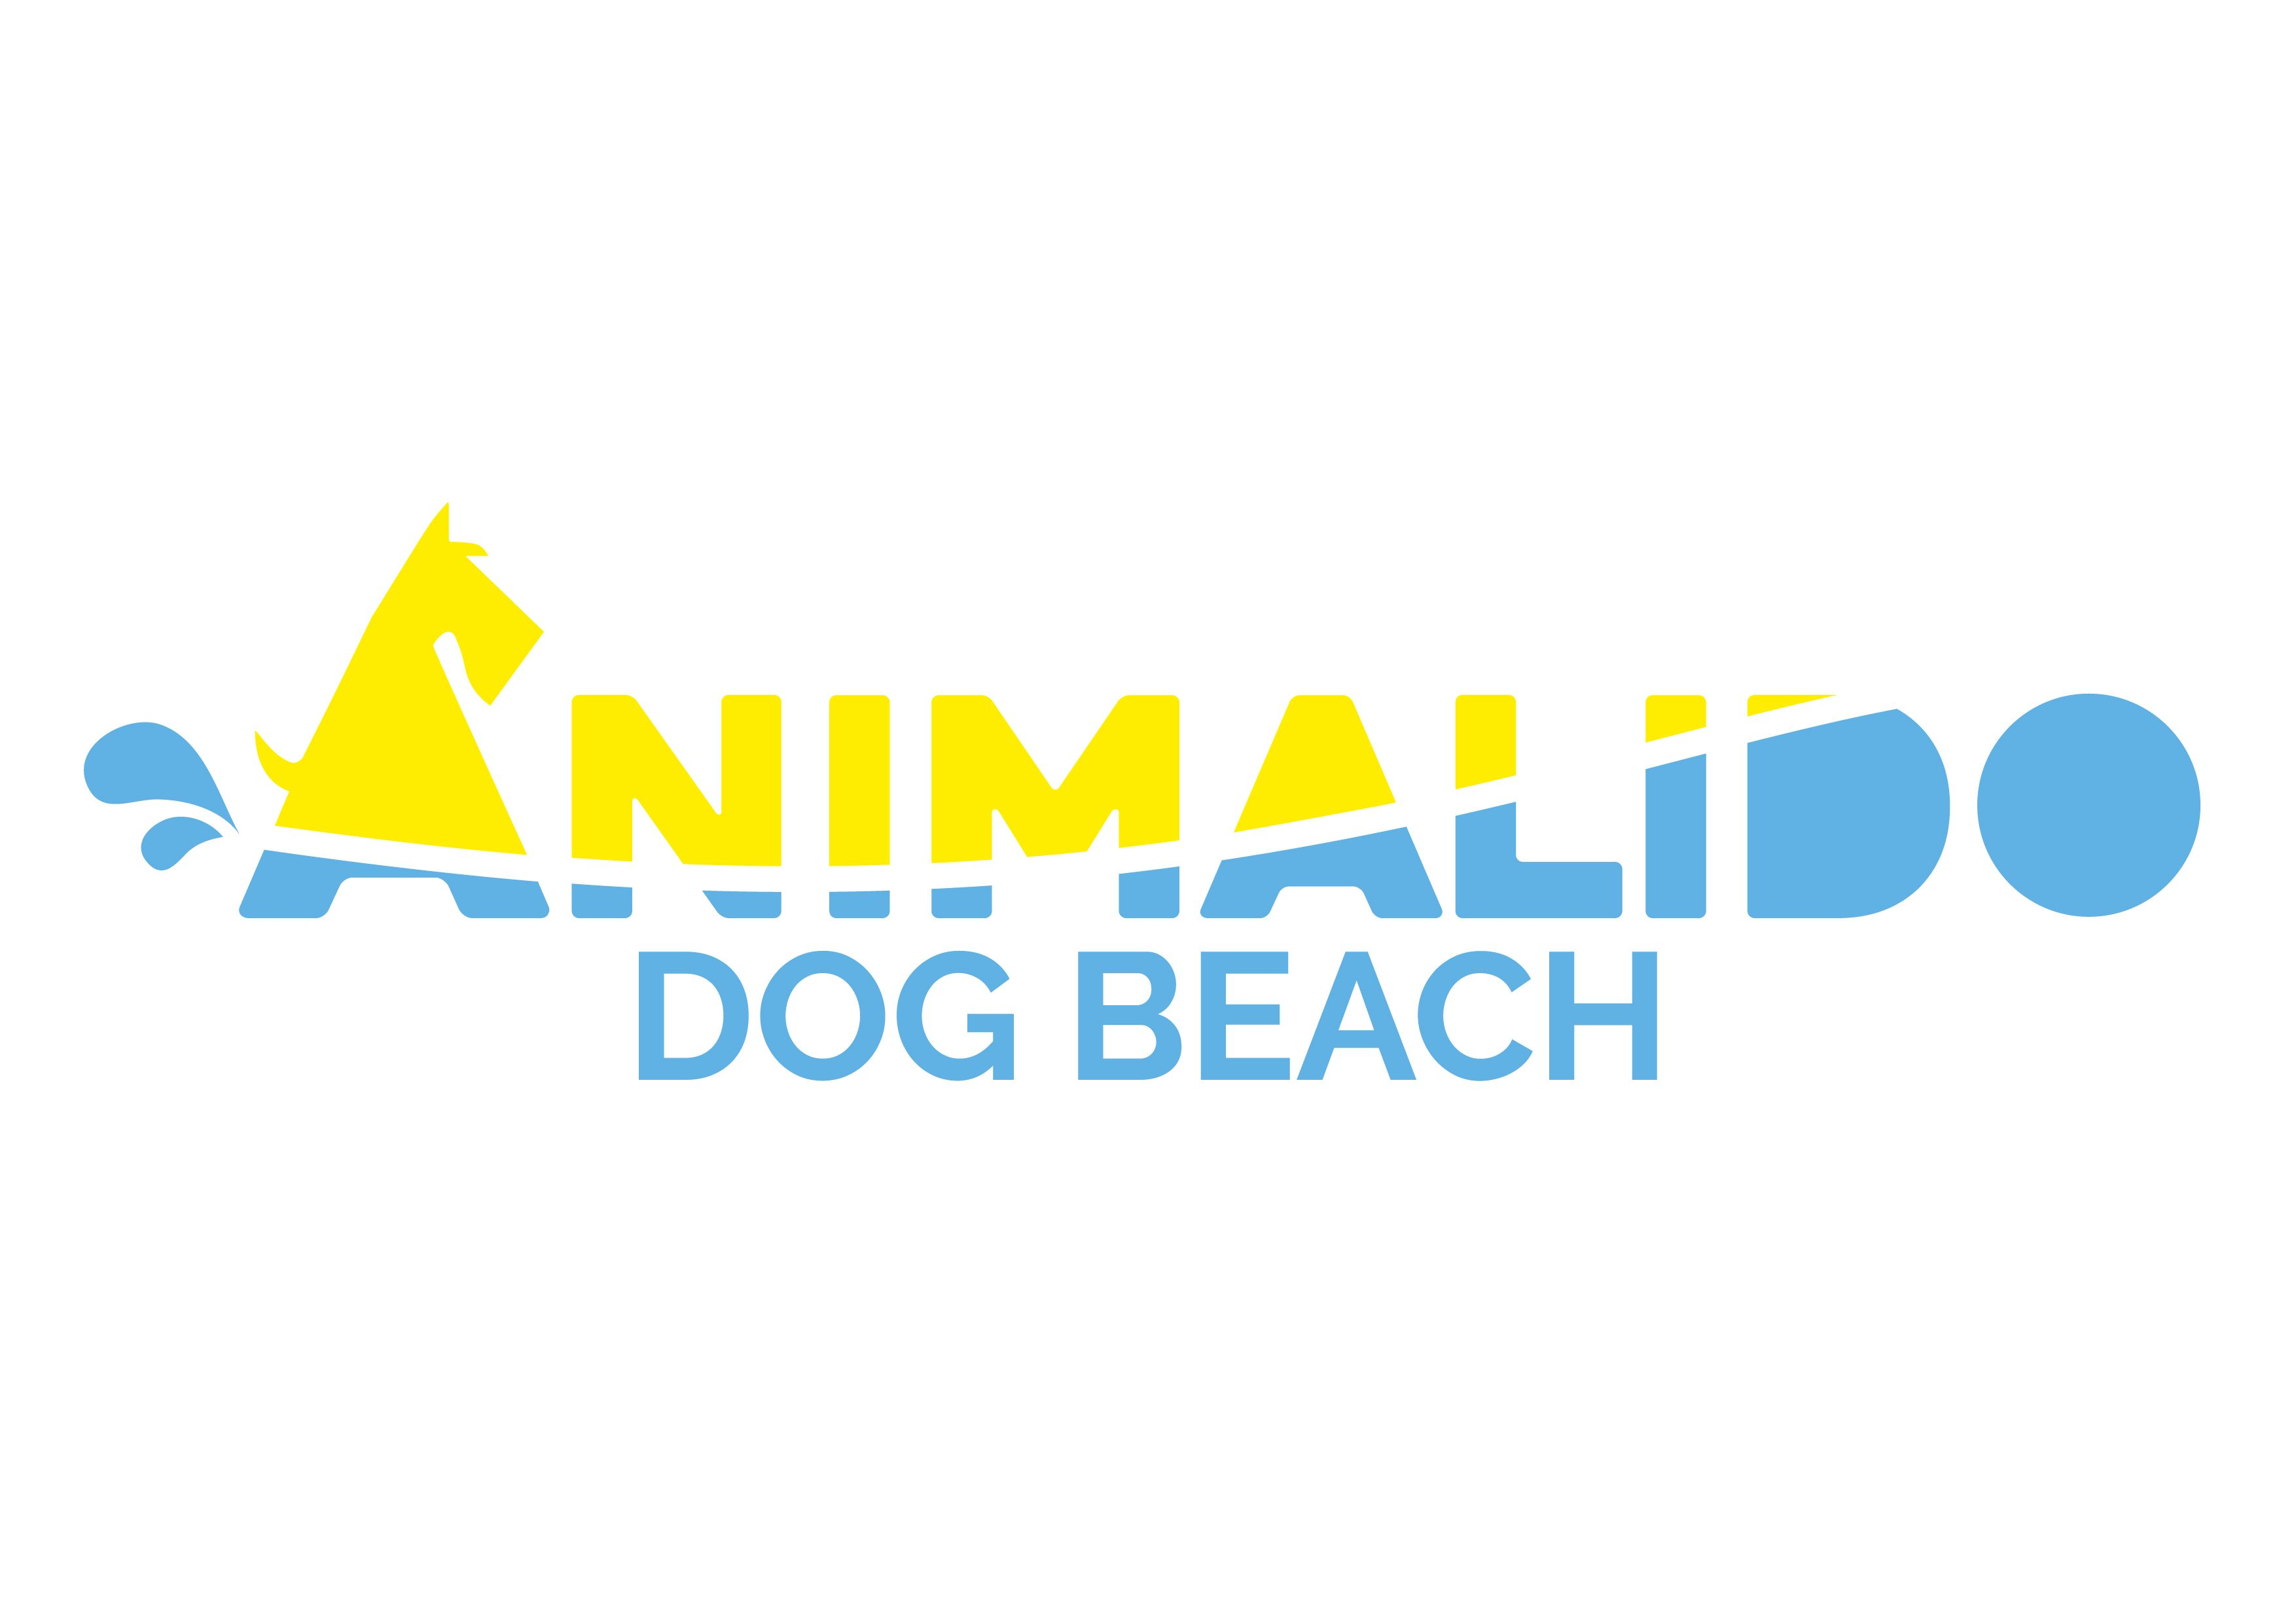 Il Giardino Di Ecuba Dogalize Animalido Dog Beach Dogs Cats Pets Cani Pinterest